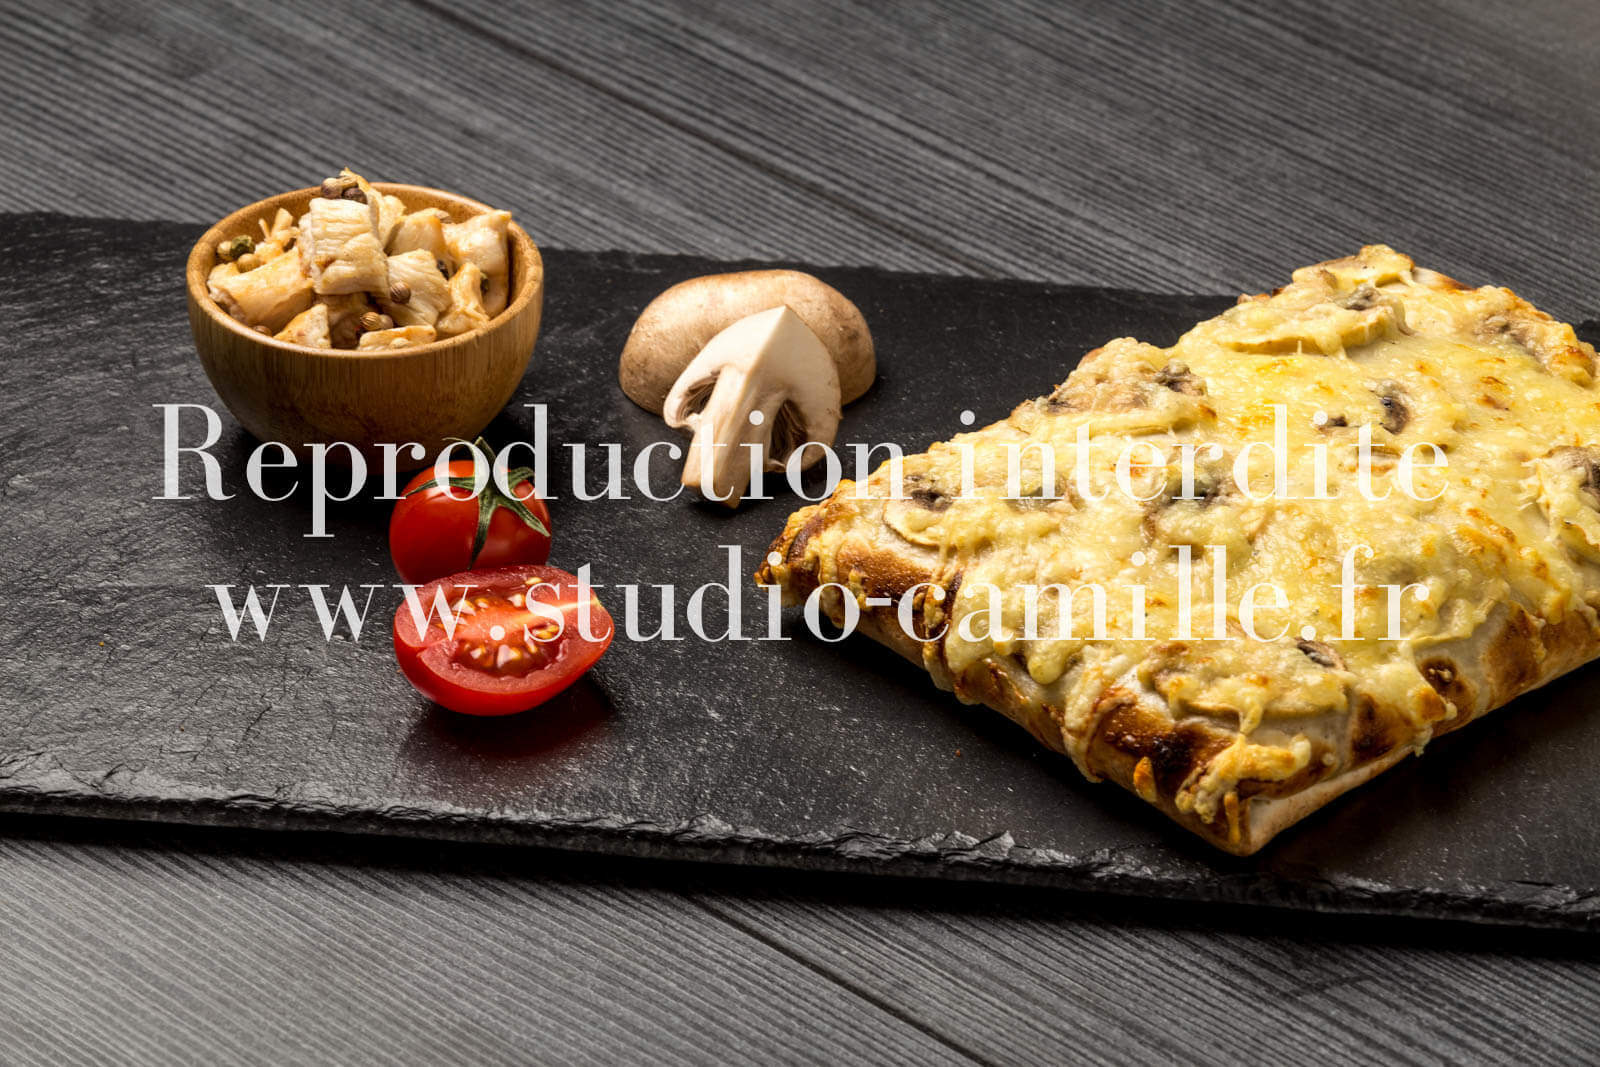 photographe culinaire montpellier tacos kebab